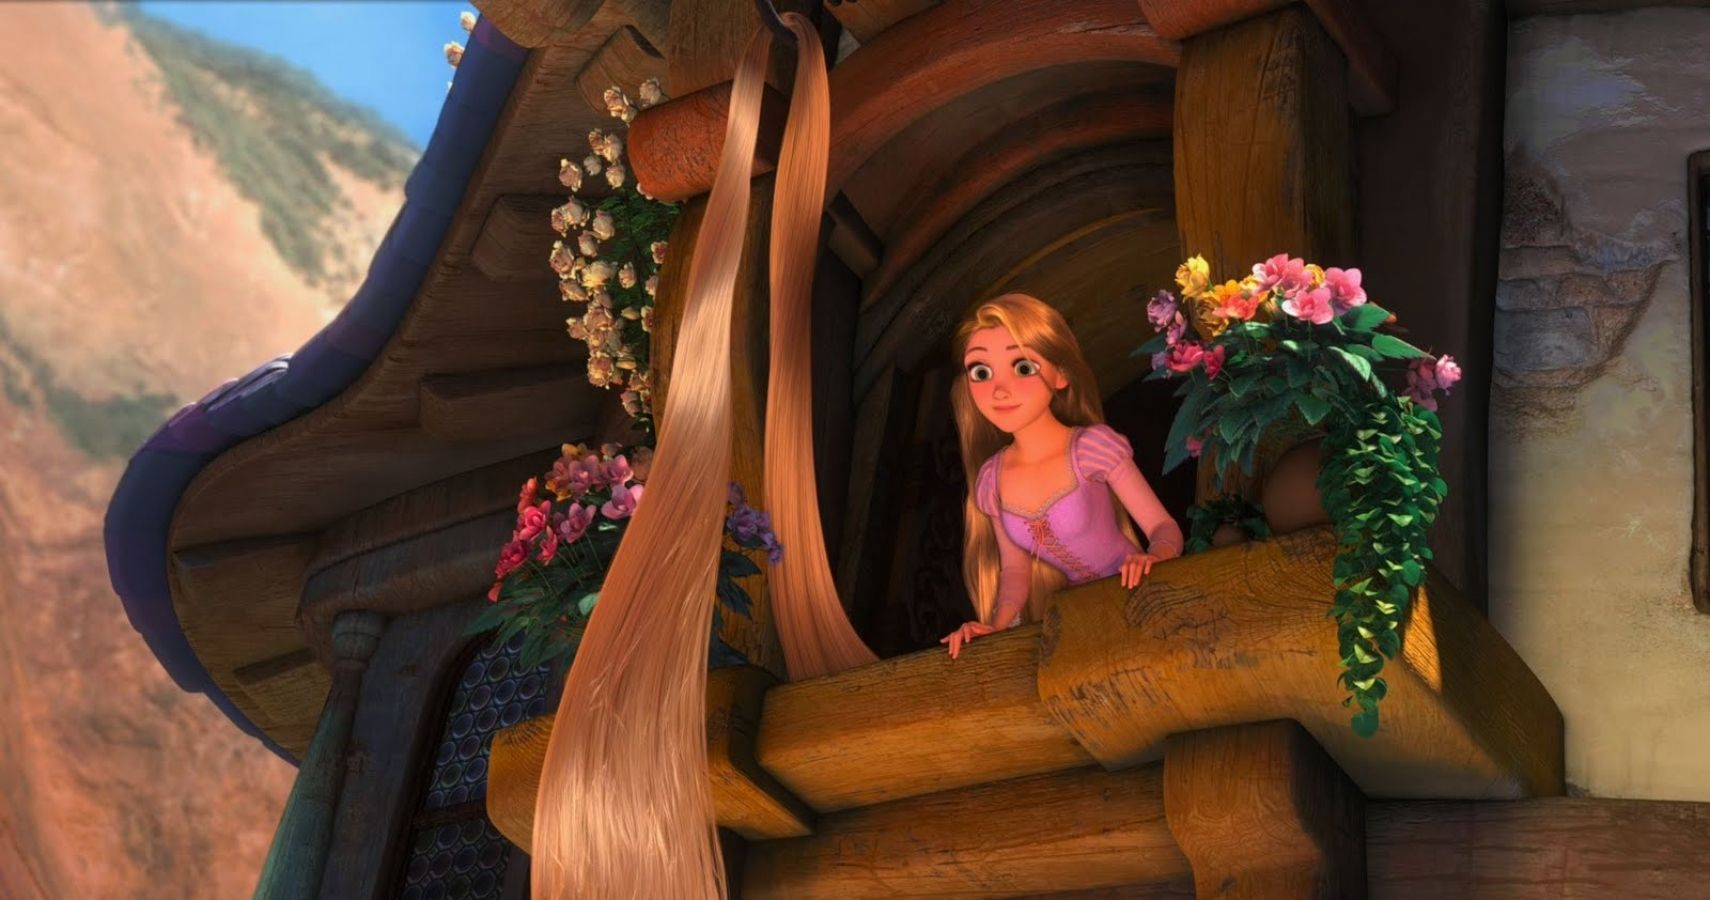 Eerie Coincidence That Disney S Tangled May Have Predicted The Pandemic